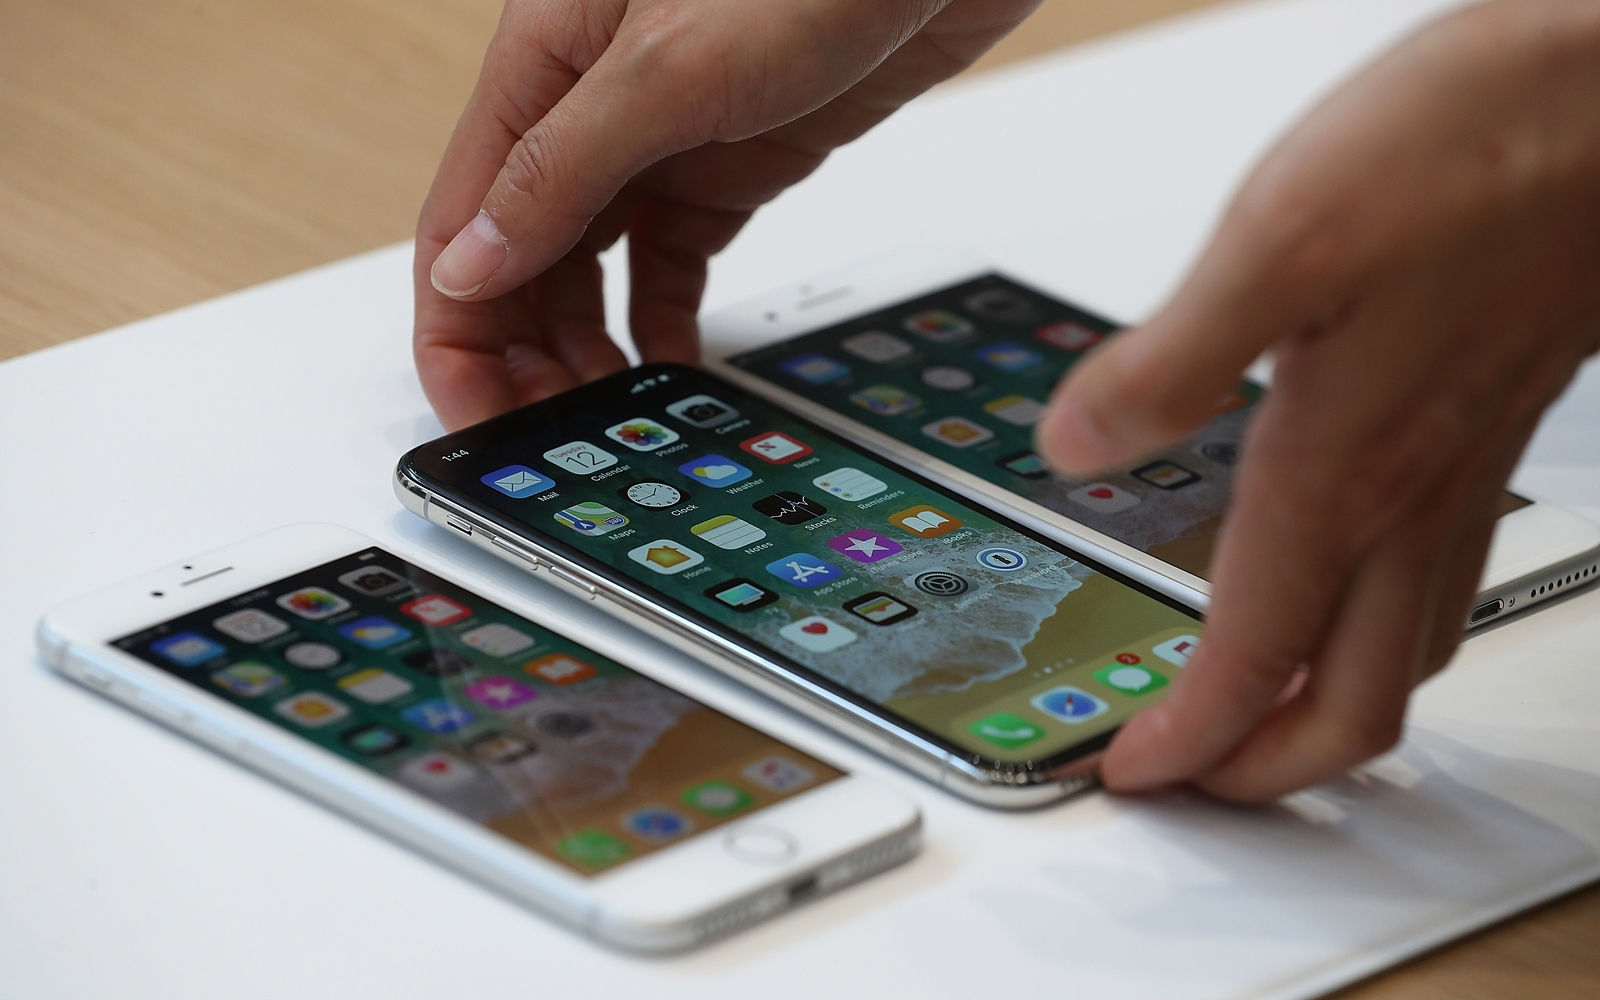 No longer means better: Apple tolerates lower sales of flagship iPhones